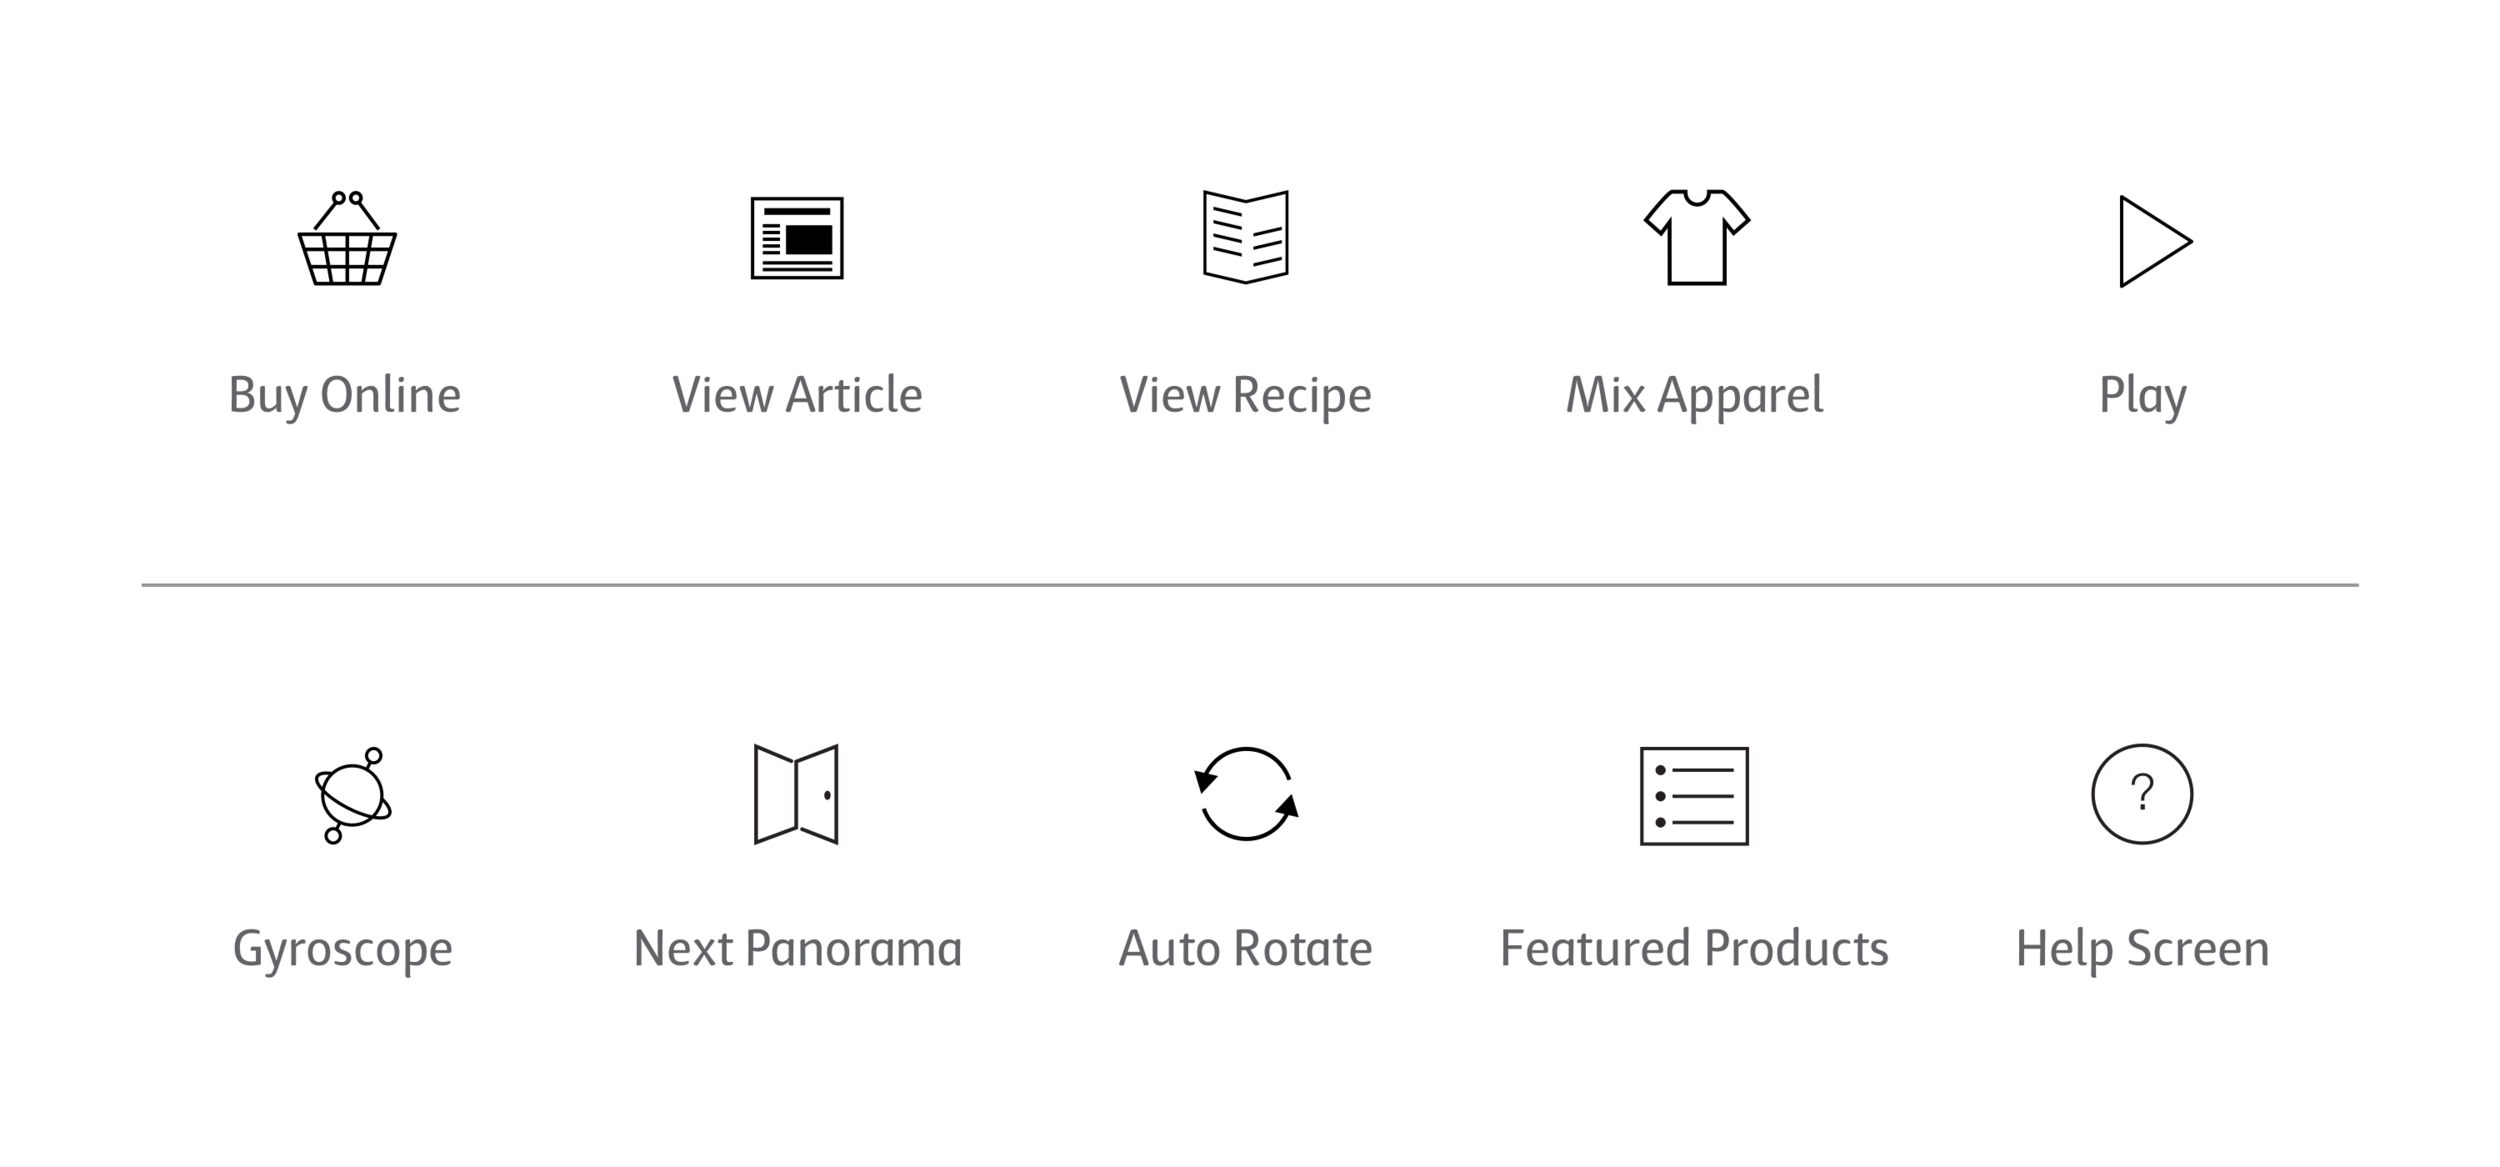 Top: Icons to accompany the product popovers were created to as click throughs to interact with more content. Bottom: Menu bar icons were designed to help the user control the panorama experience.